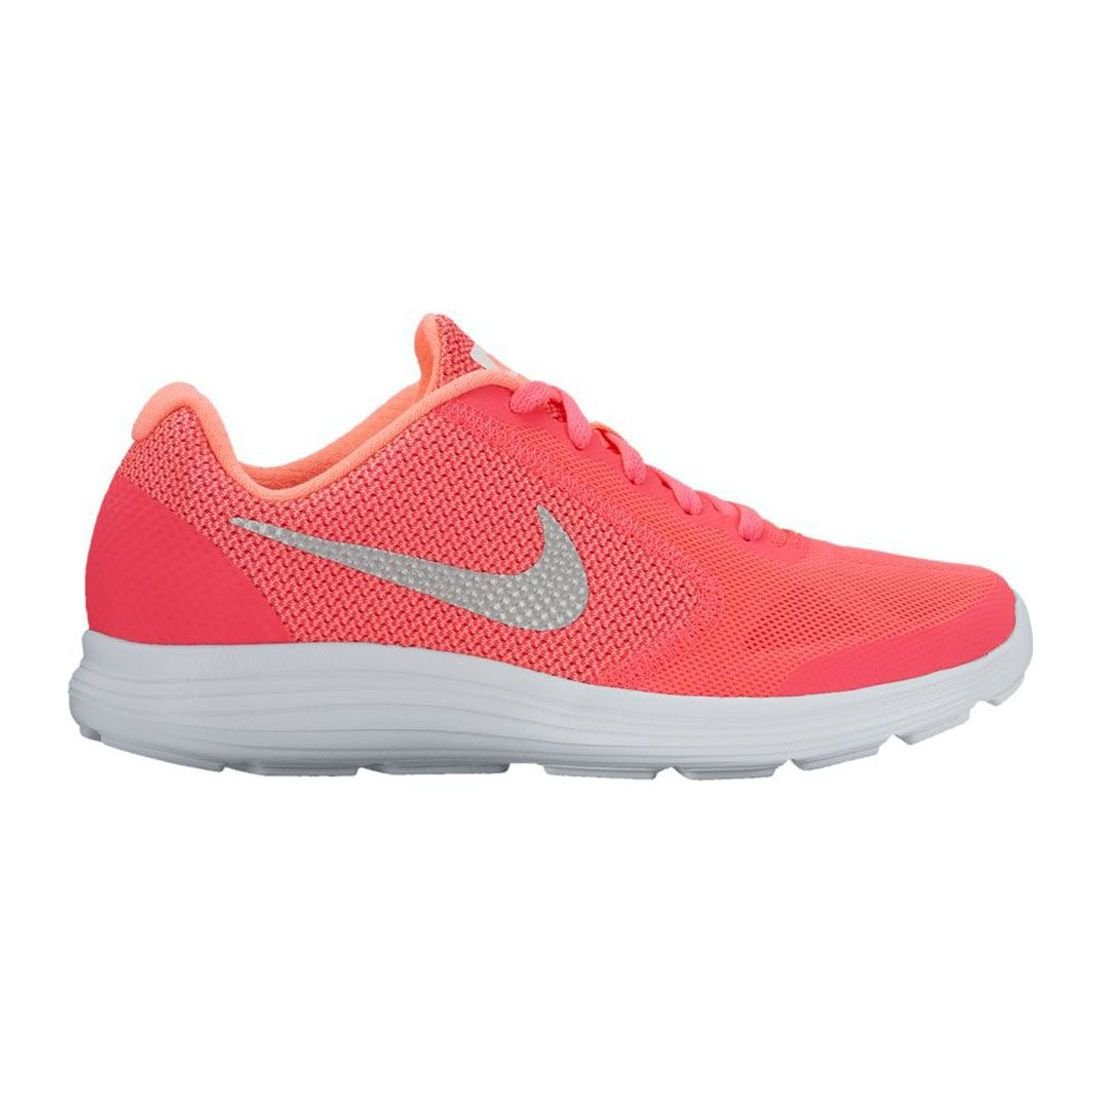 NIKE Girls' Revolution 3 (GS) Running Shoe, Racer Pink/White/Lava Glow, 5.5 M US Big Kid by NIKE